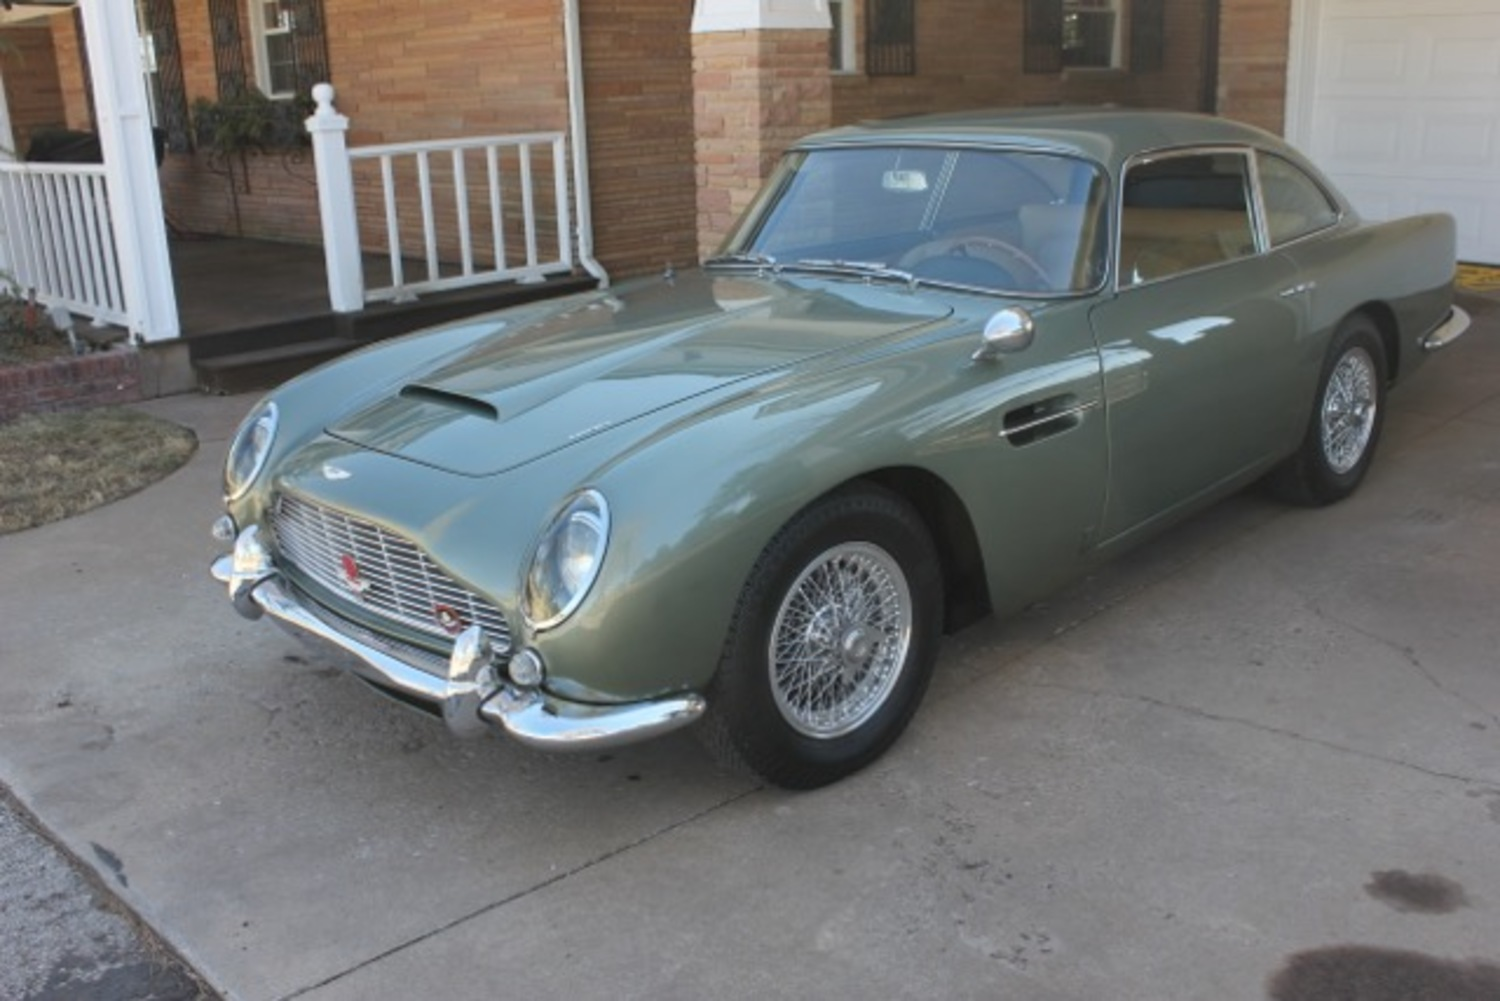 1965 Lhd Aston Martin Db5 For Sale From Aston Workshop Aw090218